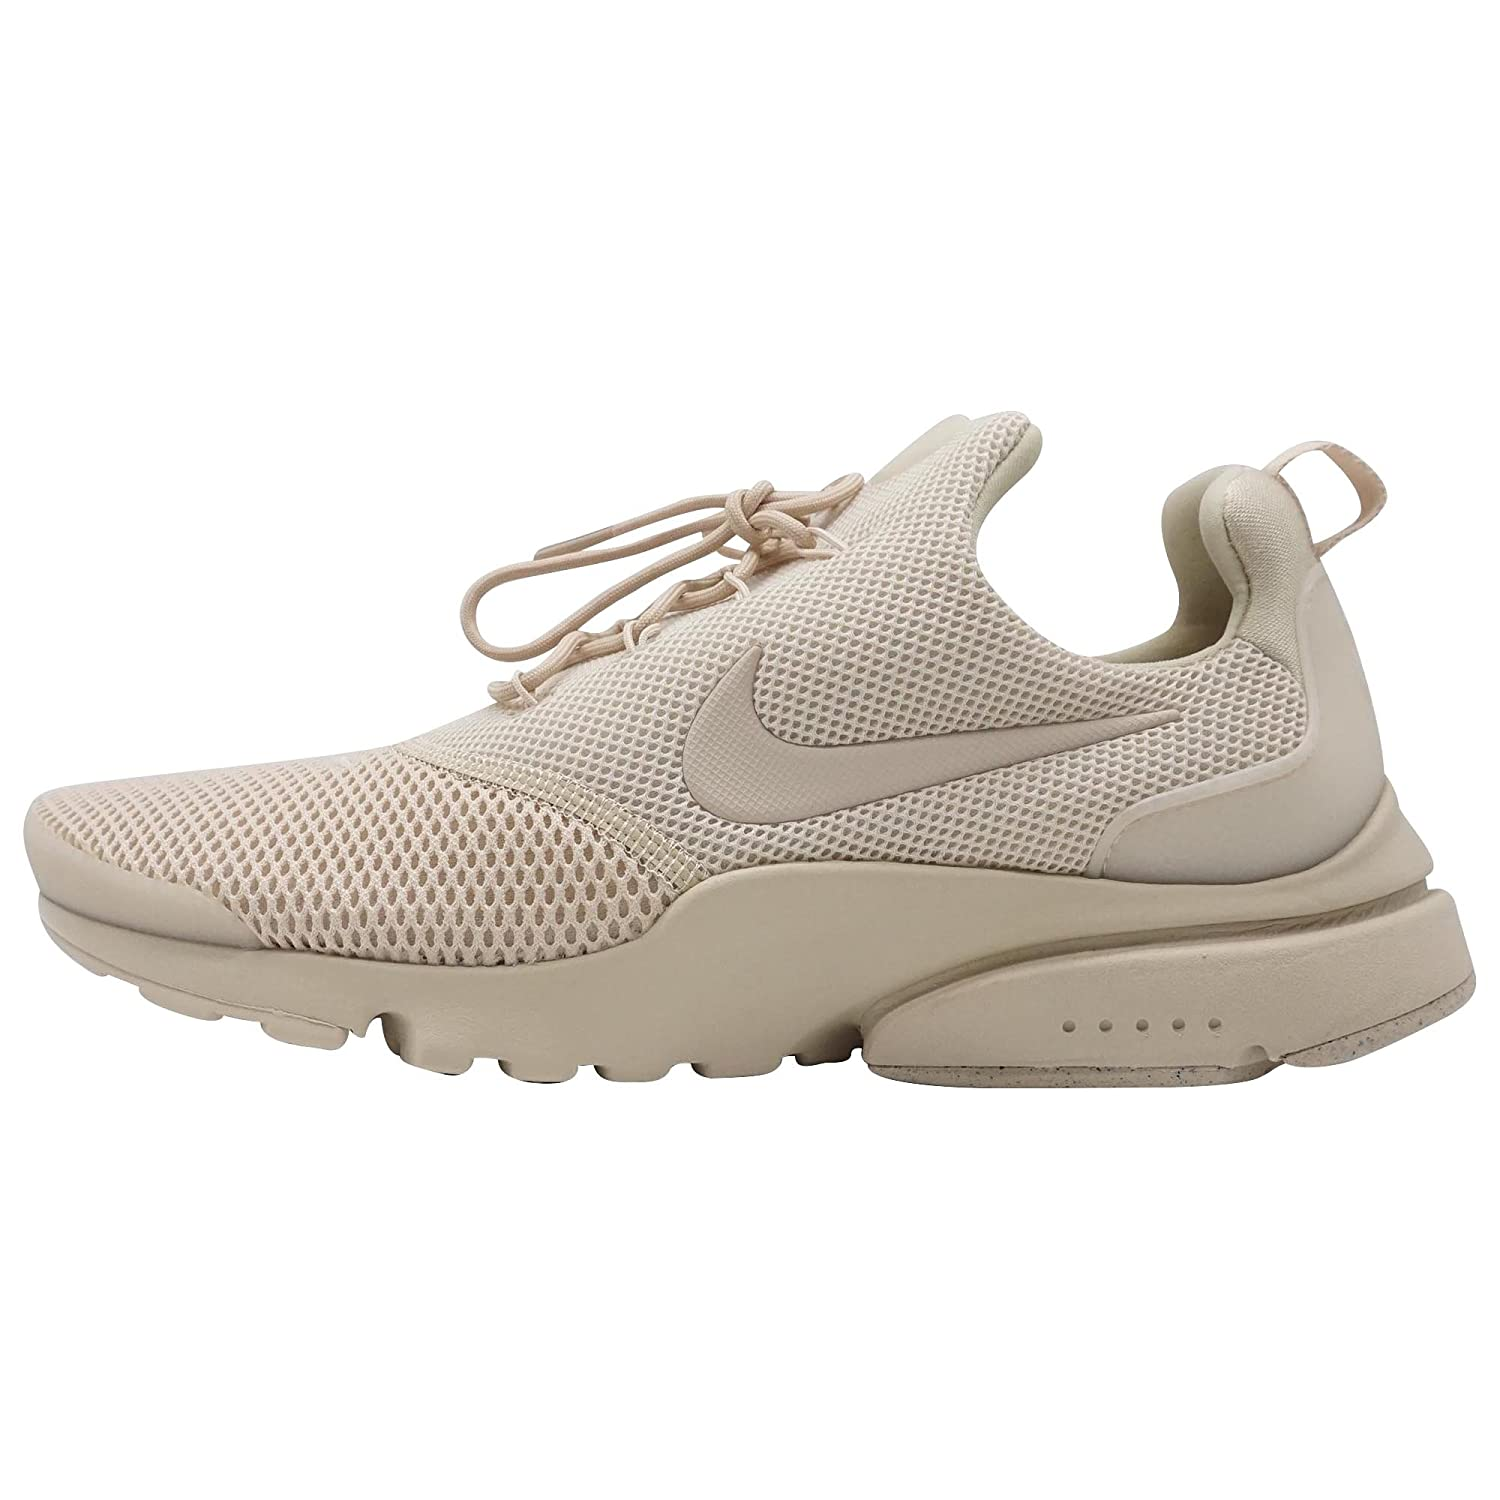 good out x arriving detailed images Nike Sportswear Presto Fly Women's Sneakers Beige: Amazon.co ...